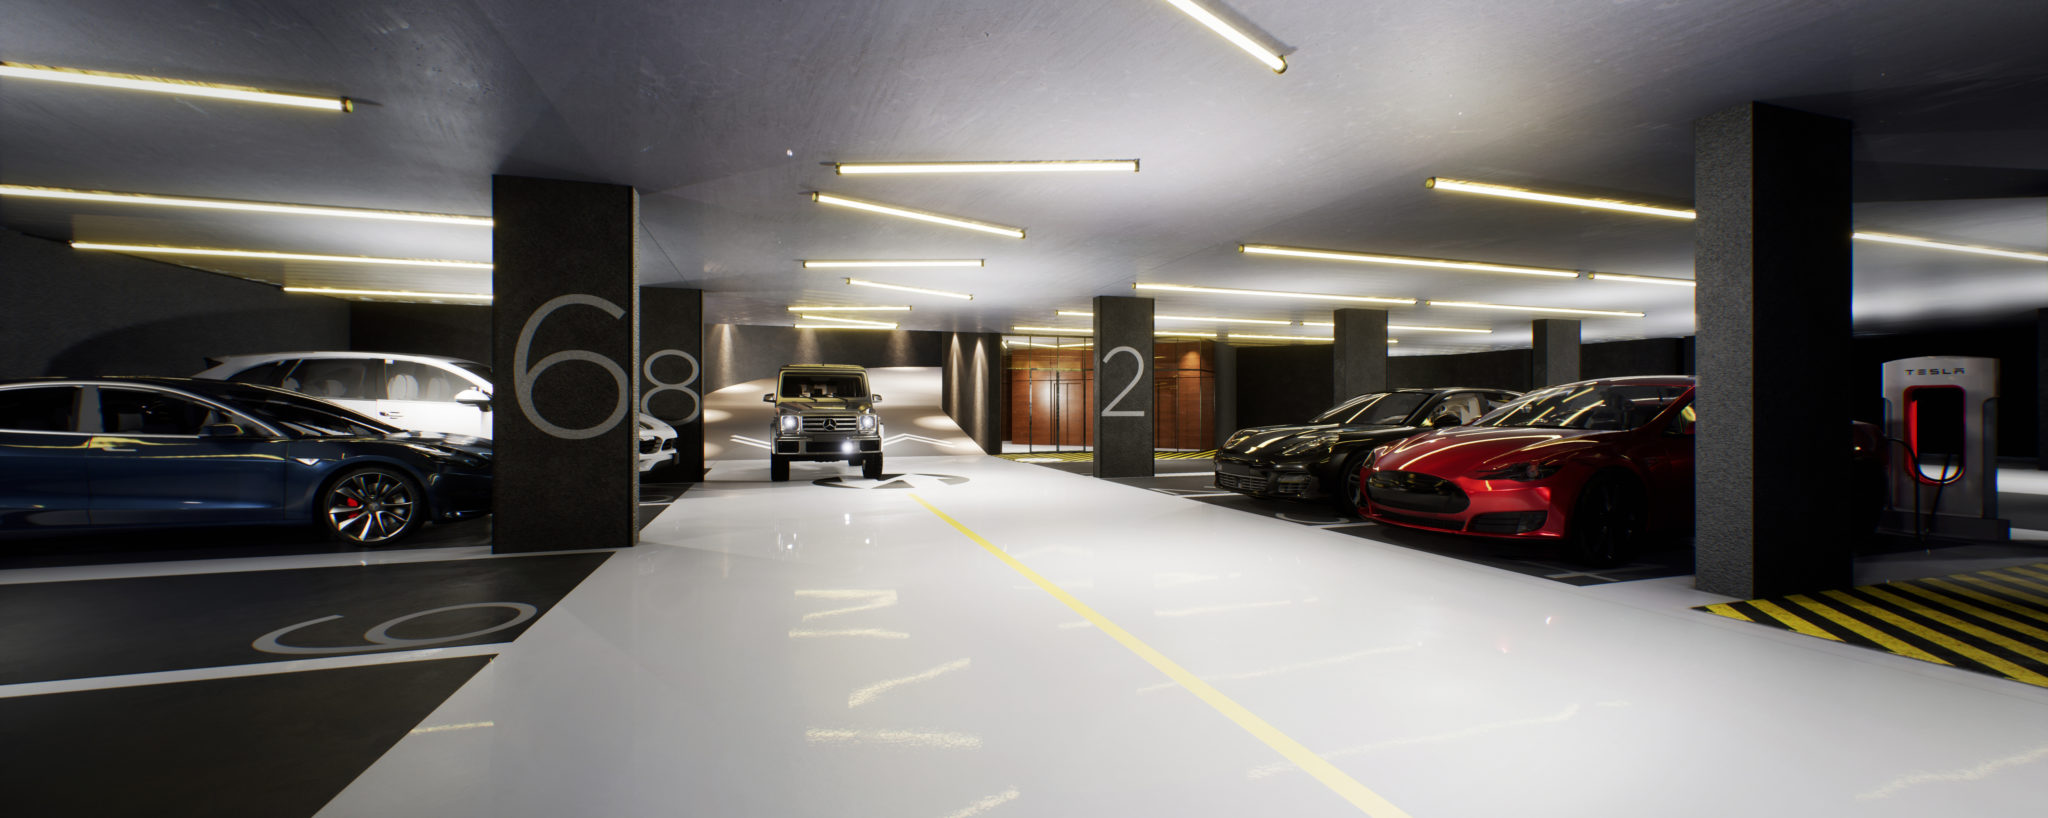 Picture of 1181 Queen St. West's underground parking garage. Toronto real estate agent because, so, due to, while, since, therefore same, less, rather, while....